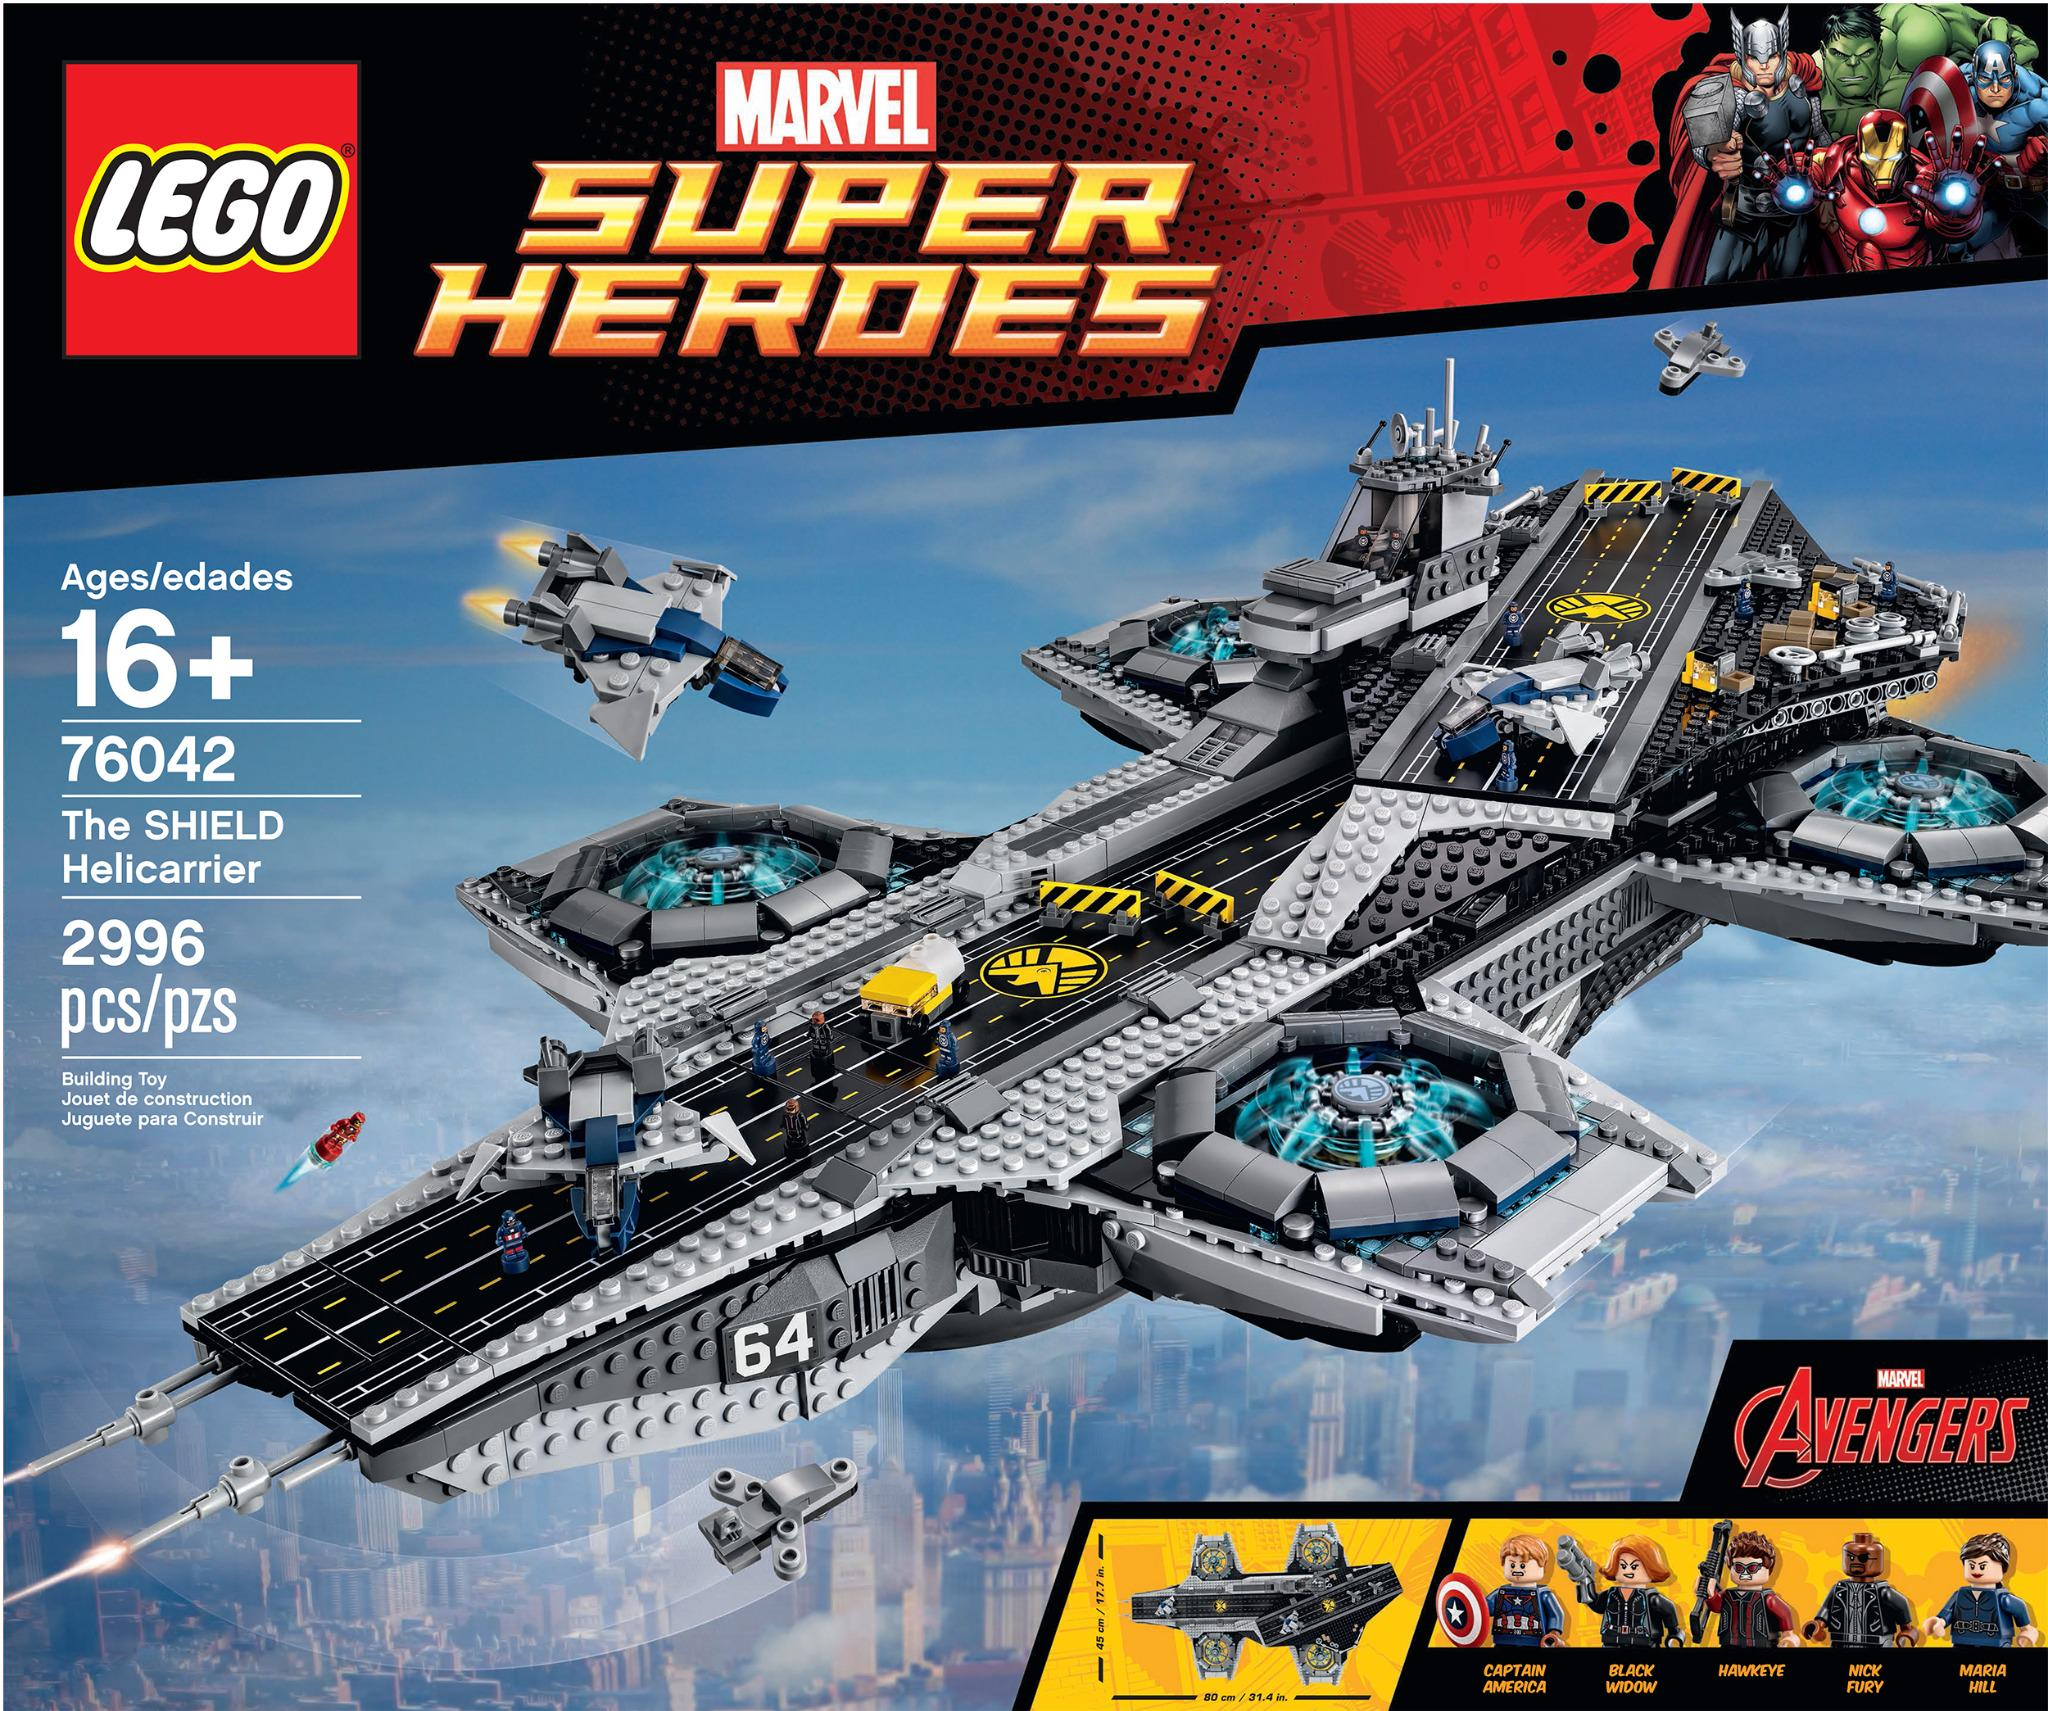 Announcing the LEGO @Marvel Super Heroes-The SHIELD Helicarrier! Coming March 2015 http://t.co/ZPUFlirwGo